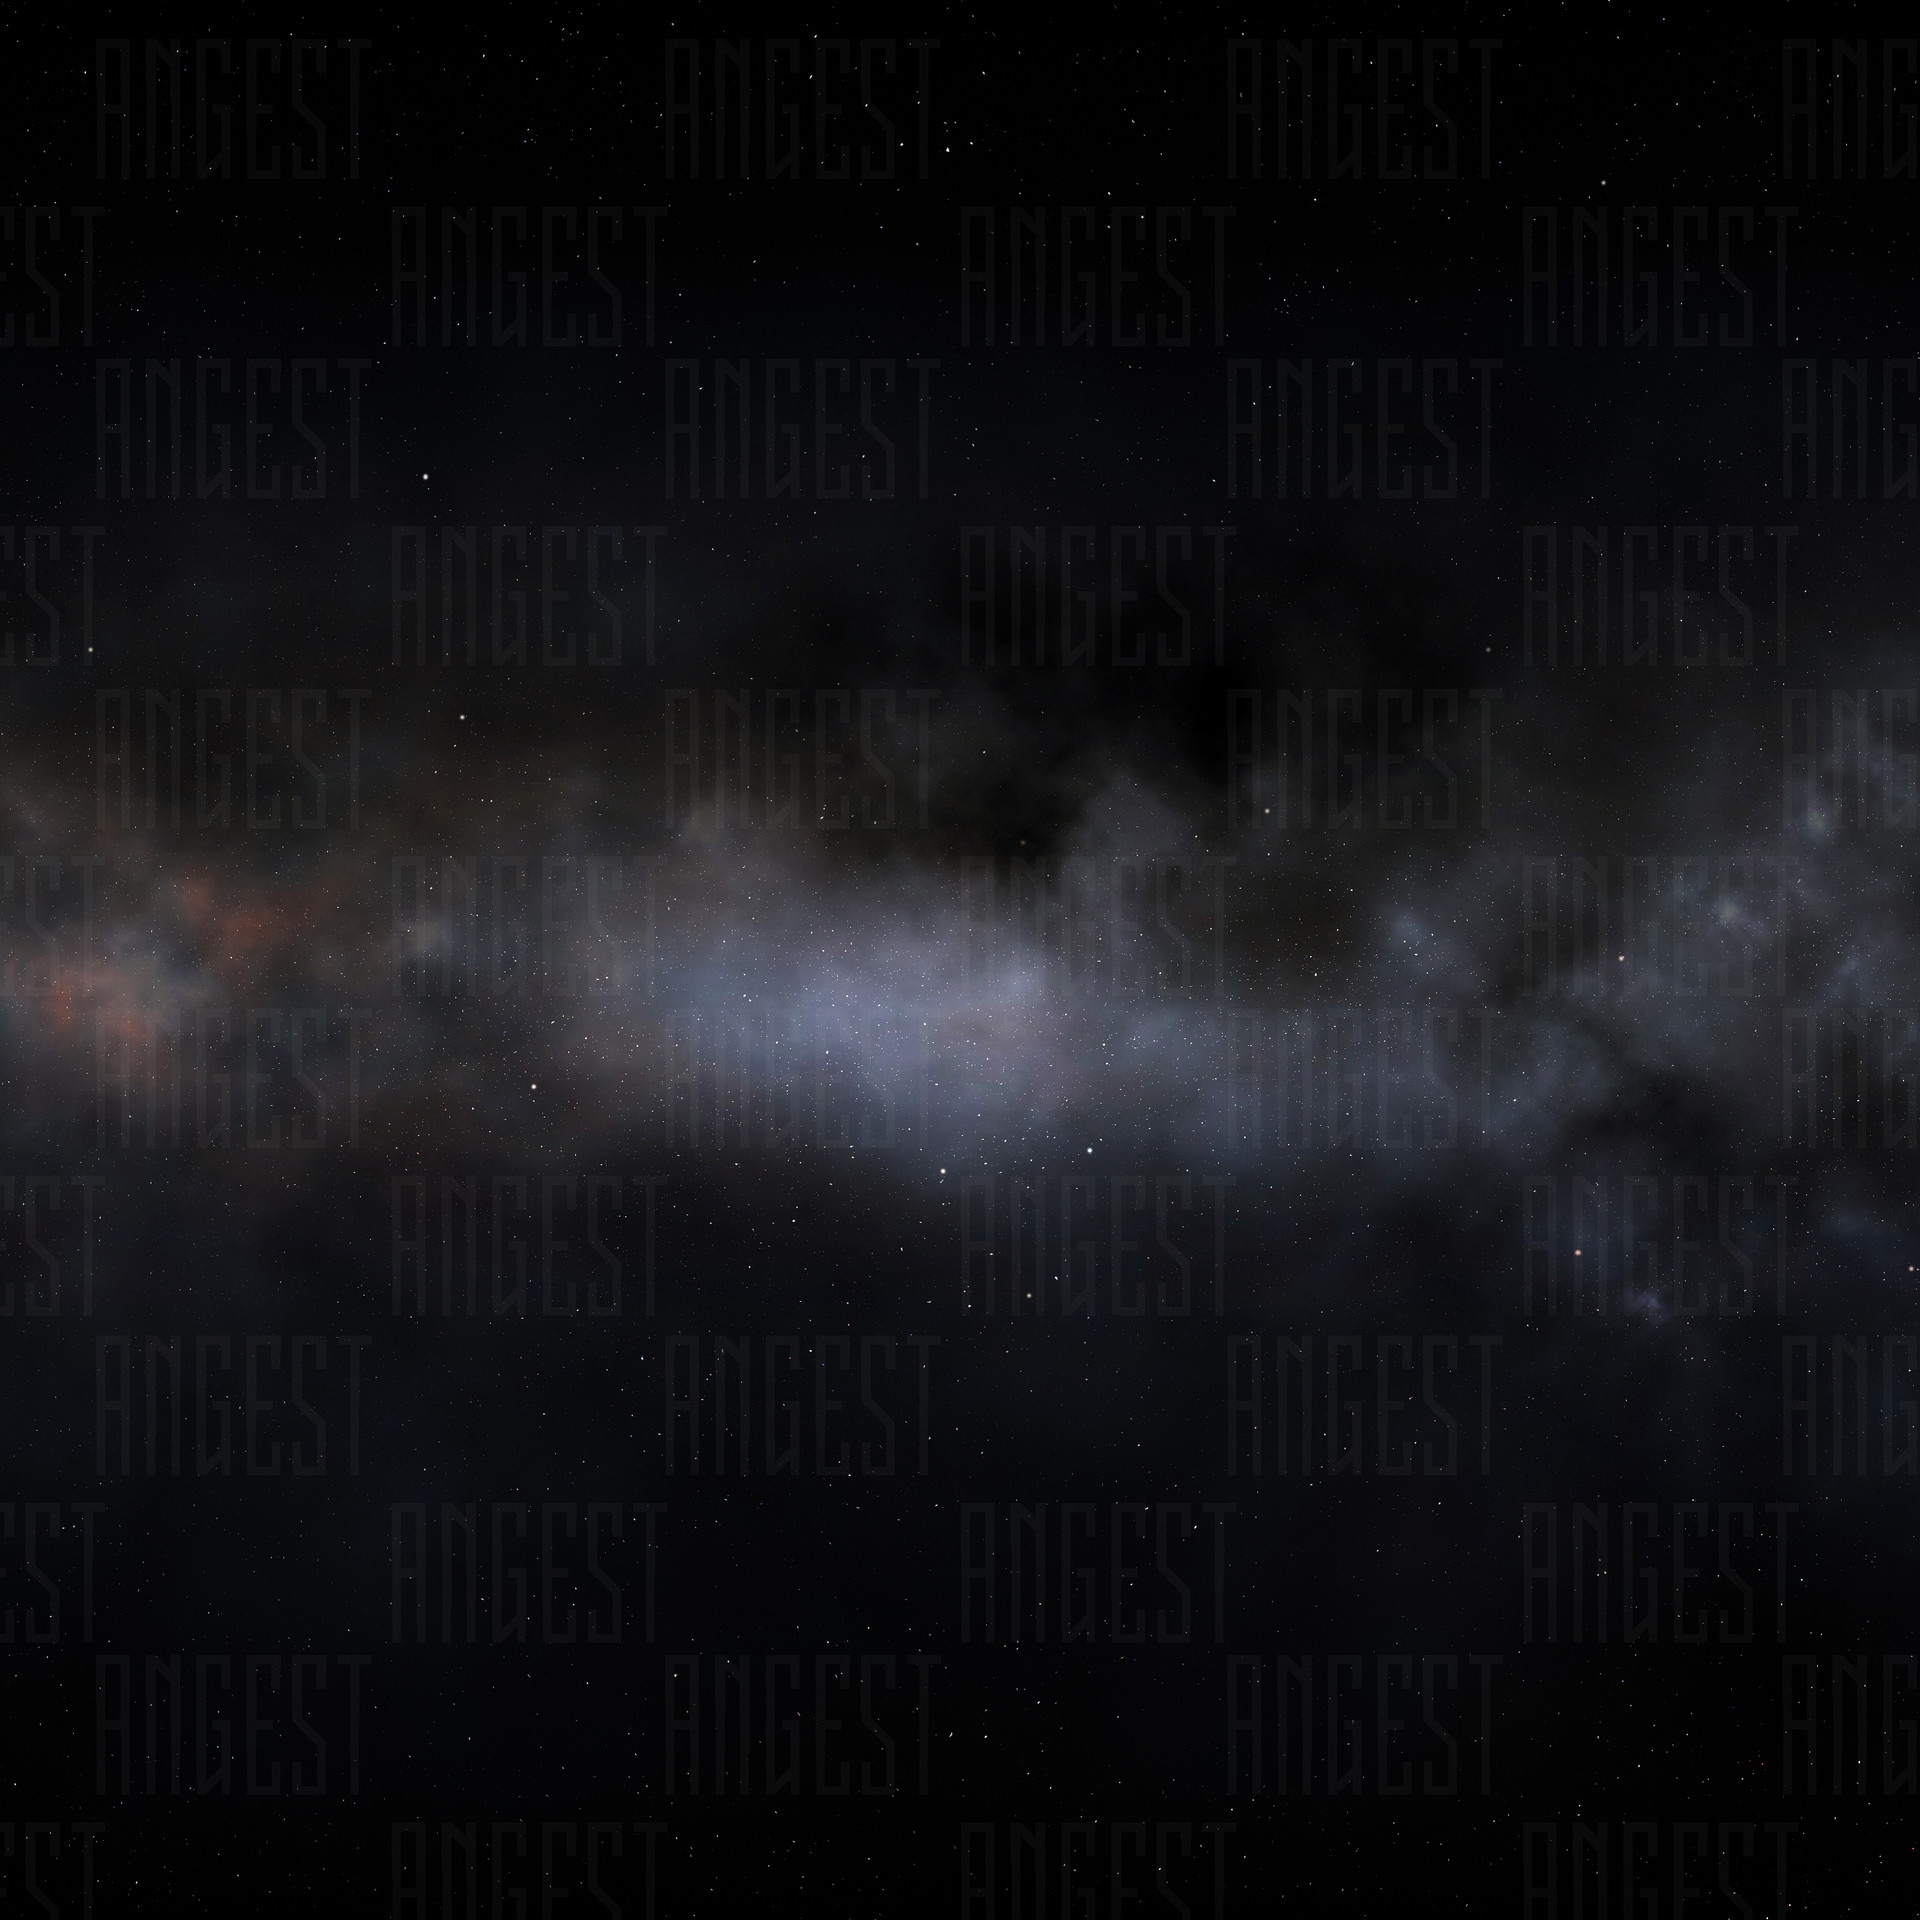 Croped Skybox in Full resolution